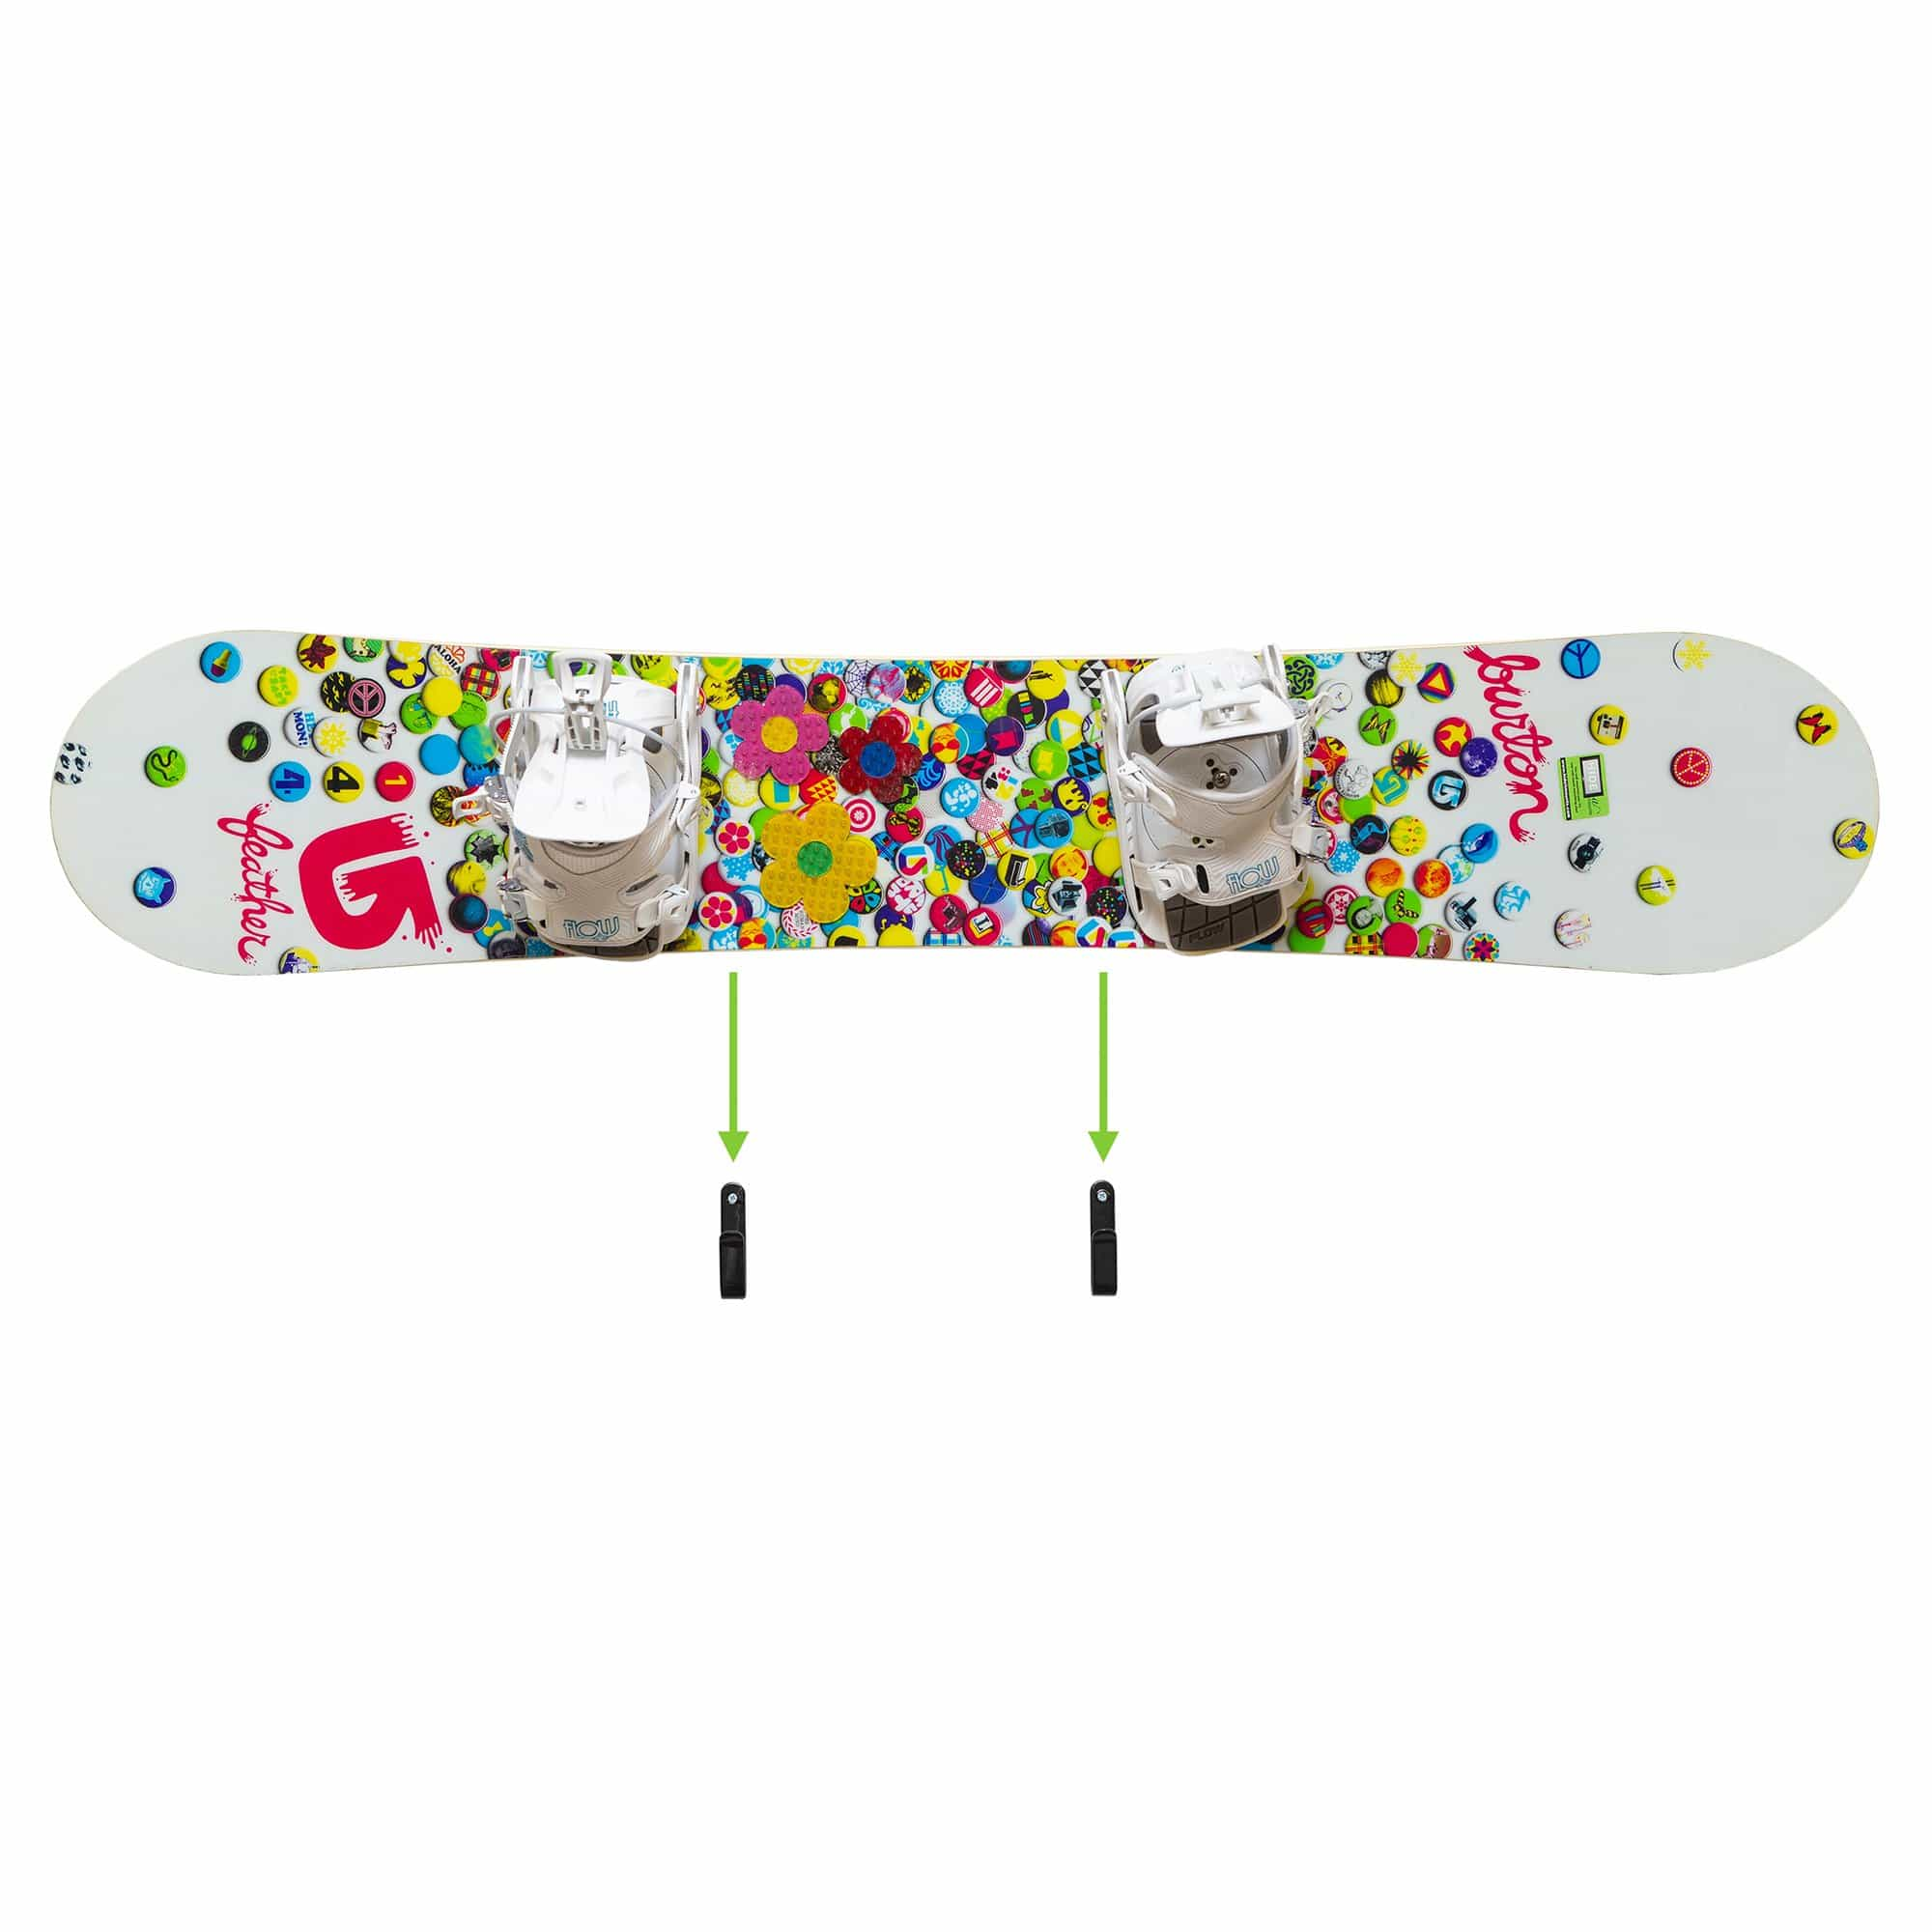 Women's burton snowboard shown being mounted in HIDEit Snowboard Mounting Clips